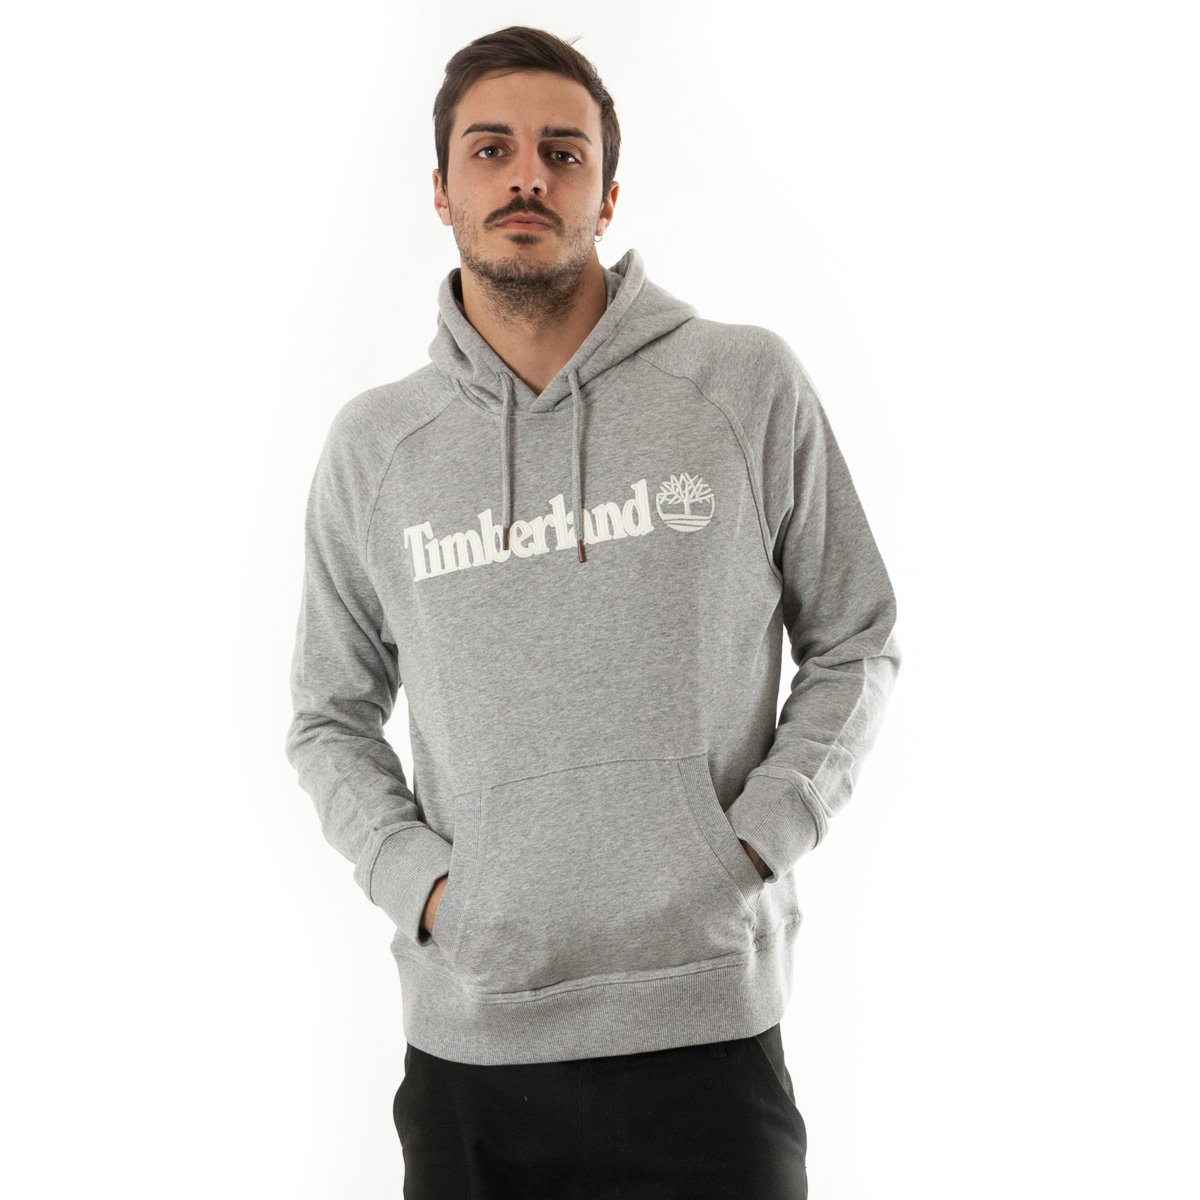 Timberland TBL Graph Laundrd Ov MED GRY HEAT, MAN, Size: L: Amazon.es: Ropa y accesorios